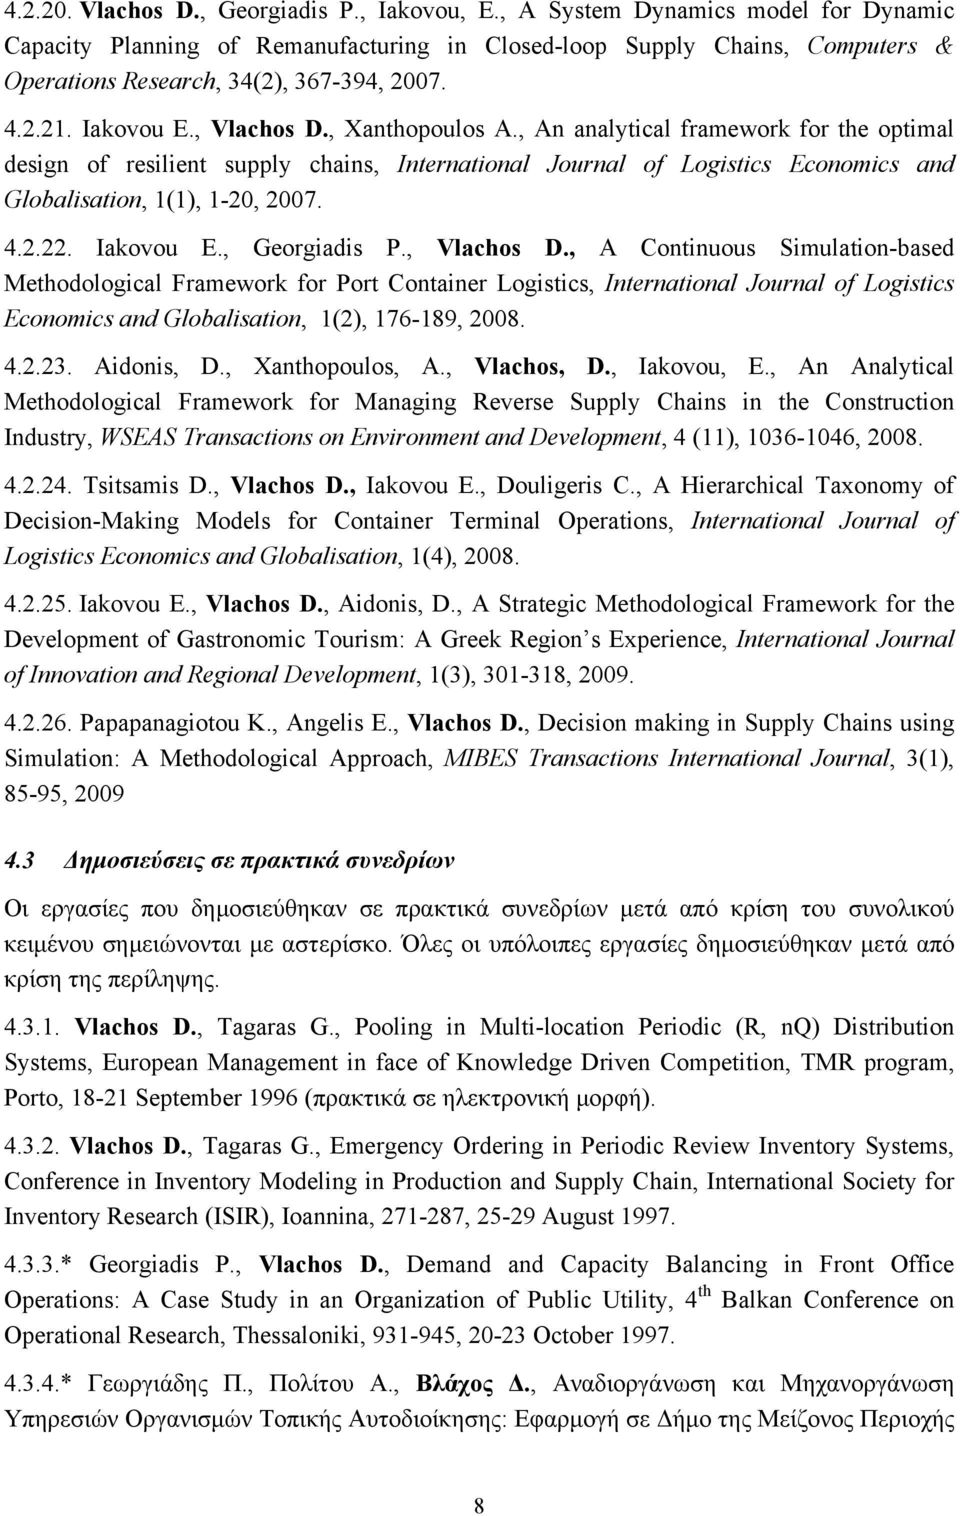 , Xanthopoulos A., An analytical framework for the optimal design of resilient supply chains, International Journal of Logistics Economics and Globalisation, 1(1), 1-20, 2007. 4.2.22. Iakovou E.